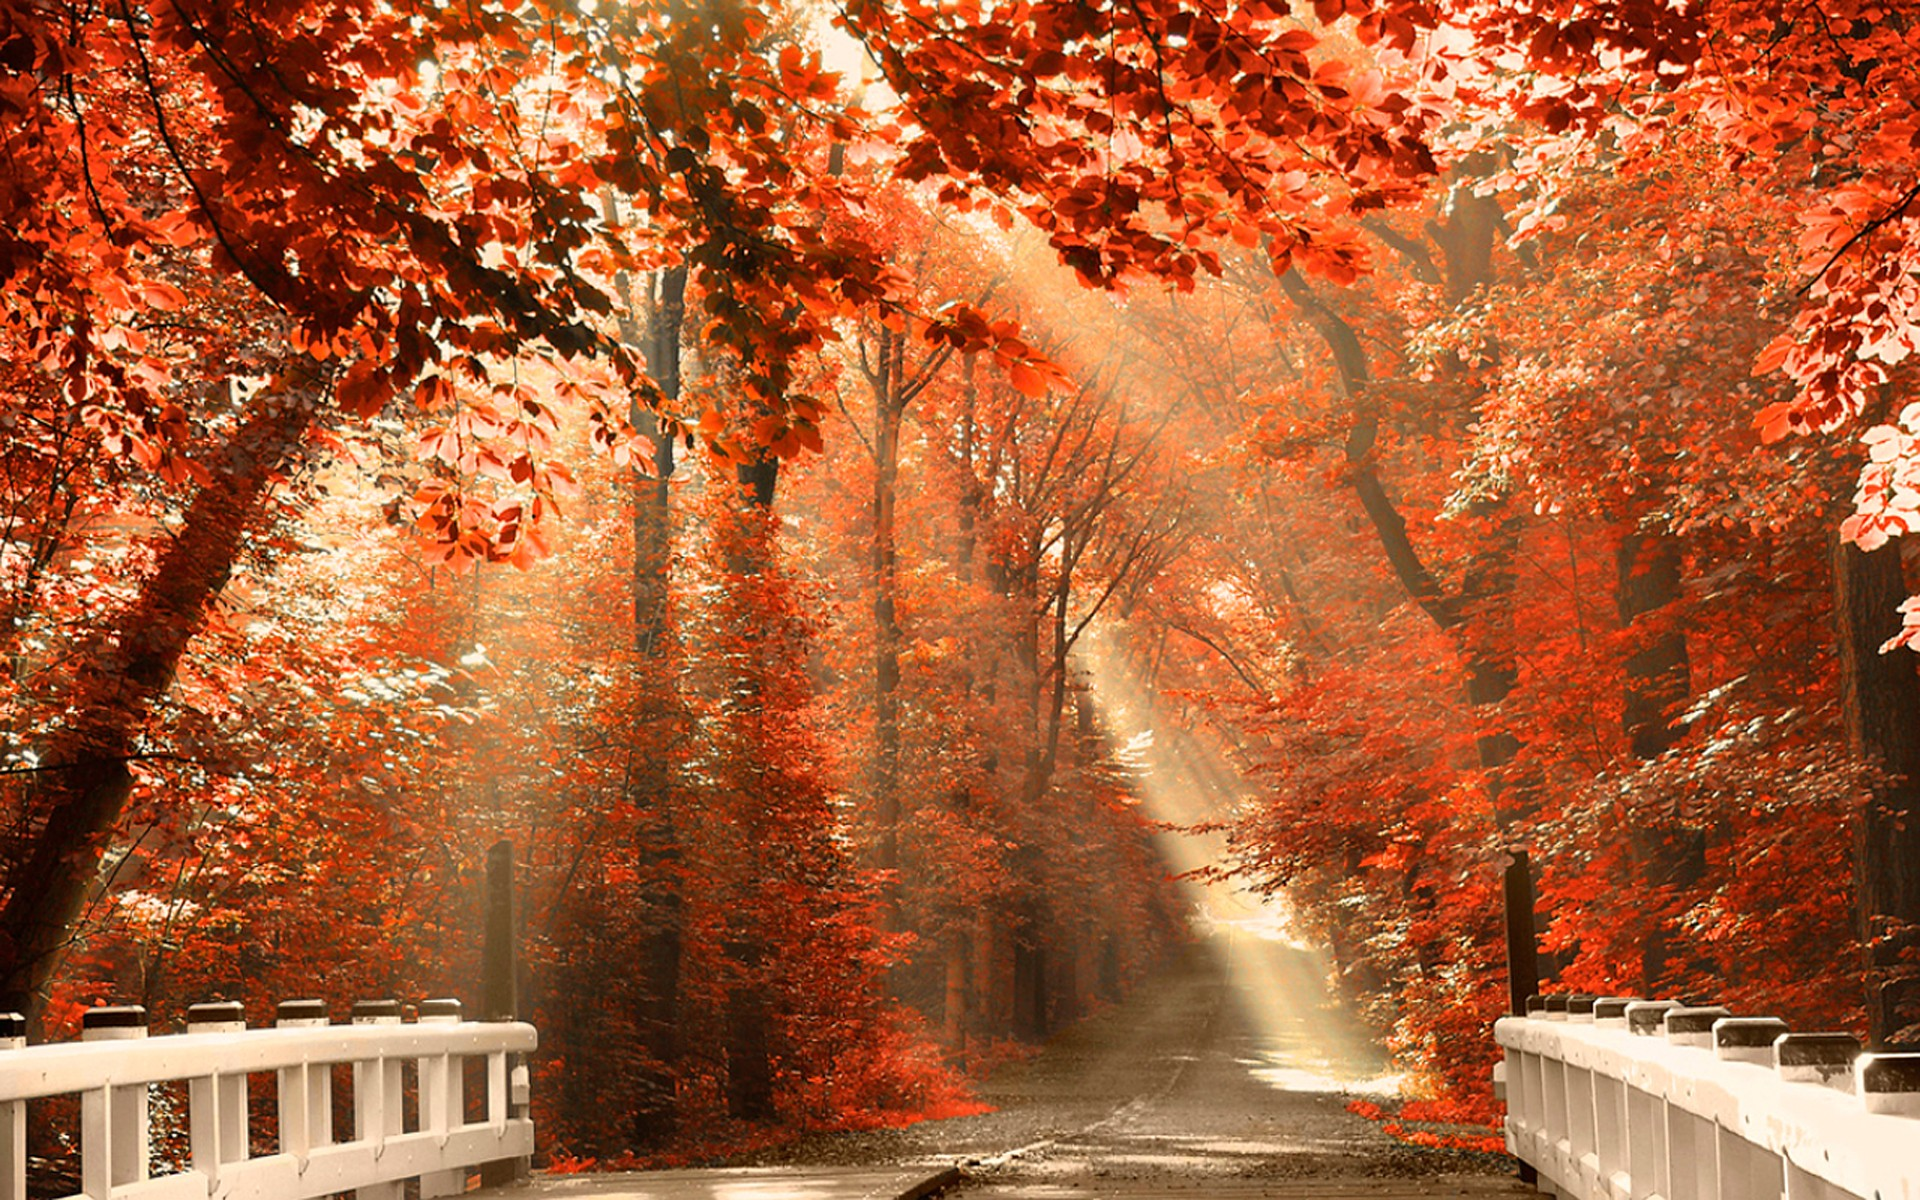 42 Autumn Backgrounds Download Free Stunning Hd: Autumn Desktop Wallpaper ·① Download Free Stunning Full HD